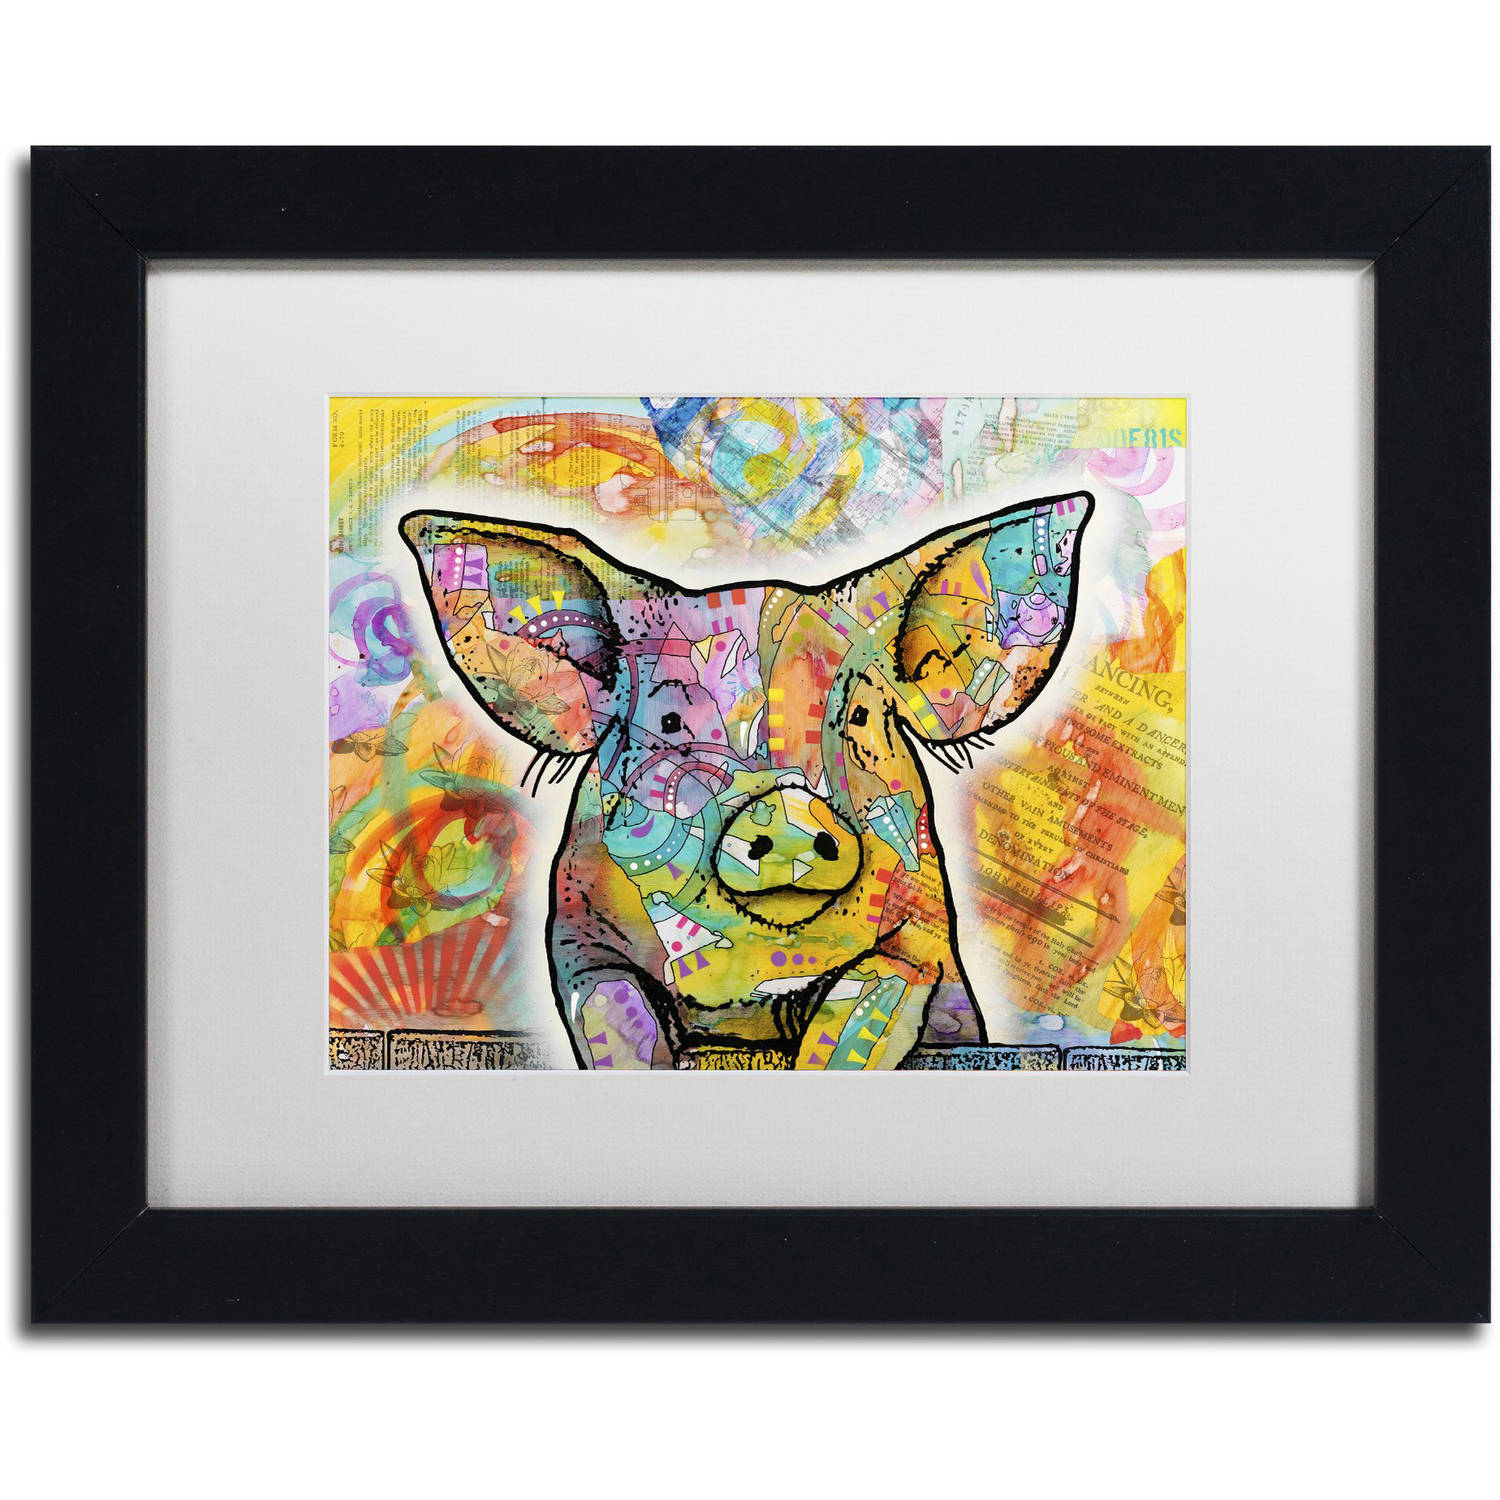 Trademark Fine Art 'The Pig' Canvas Art by Dean Russo, White Matte, Black Frame